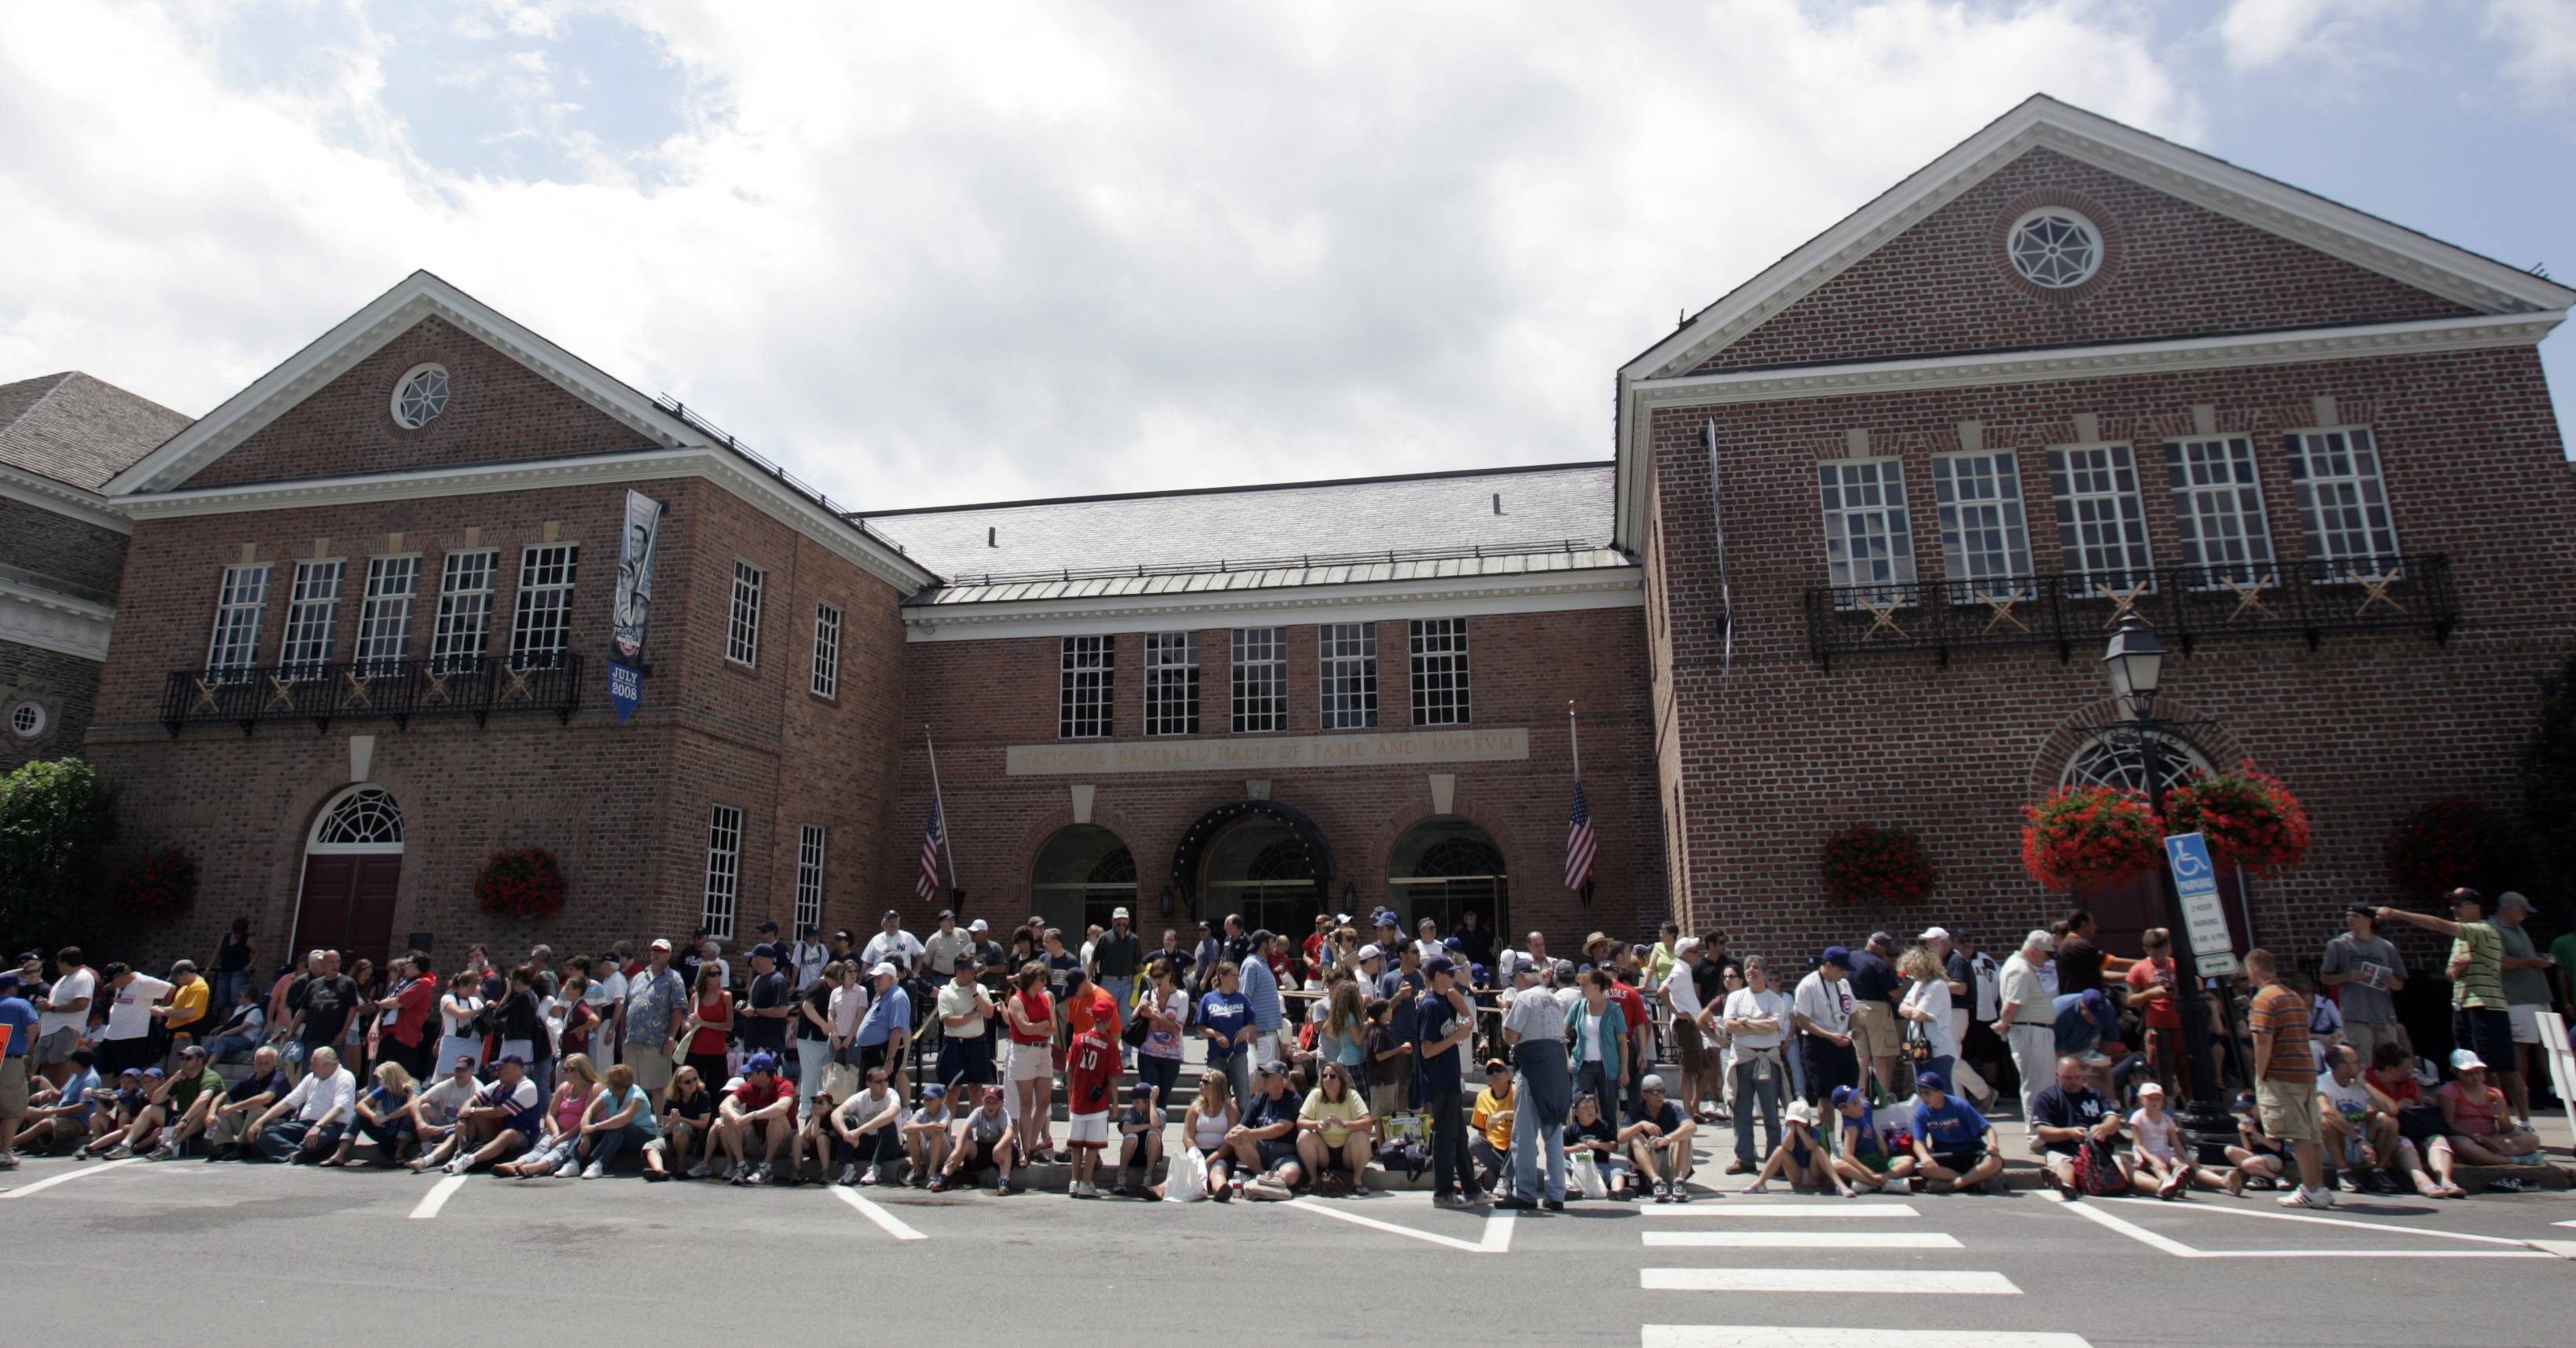 Baseball fans flock to the National Baseball Hall of Fame and Museum in Cooperstown, N.Y.